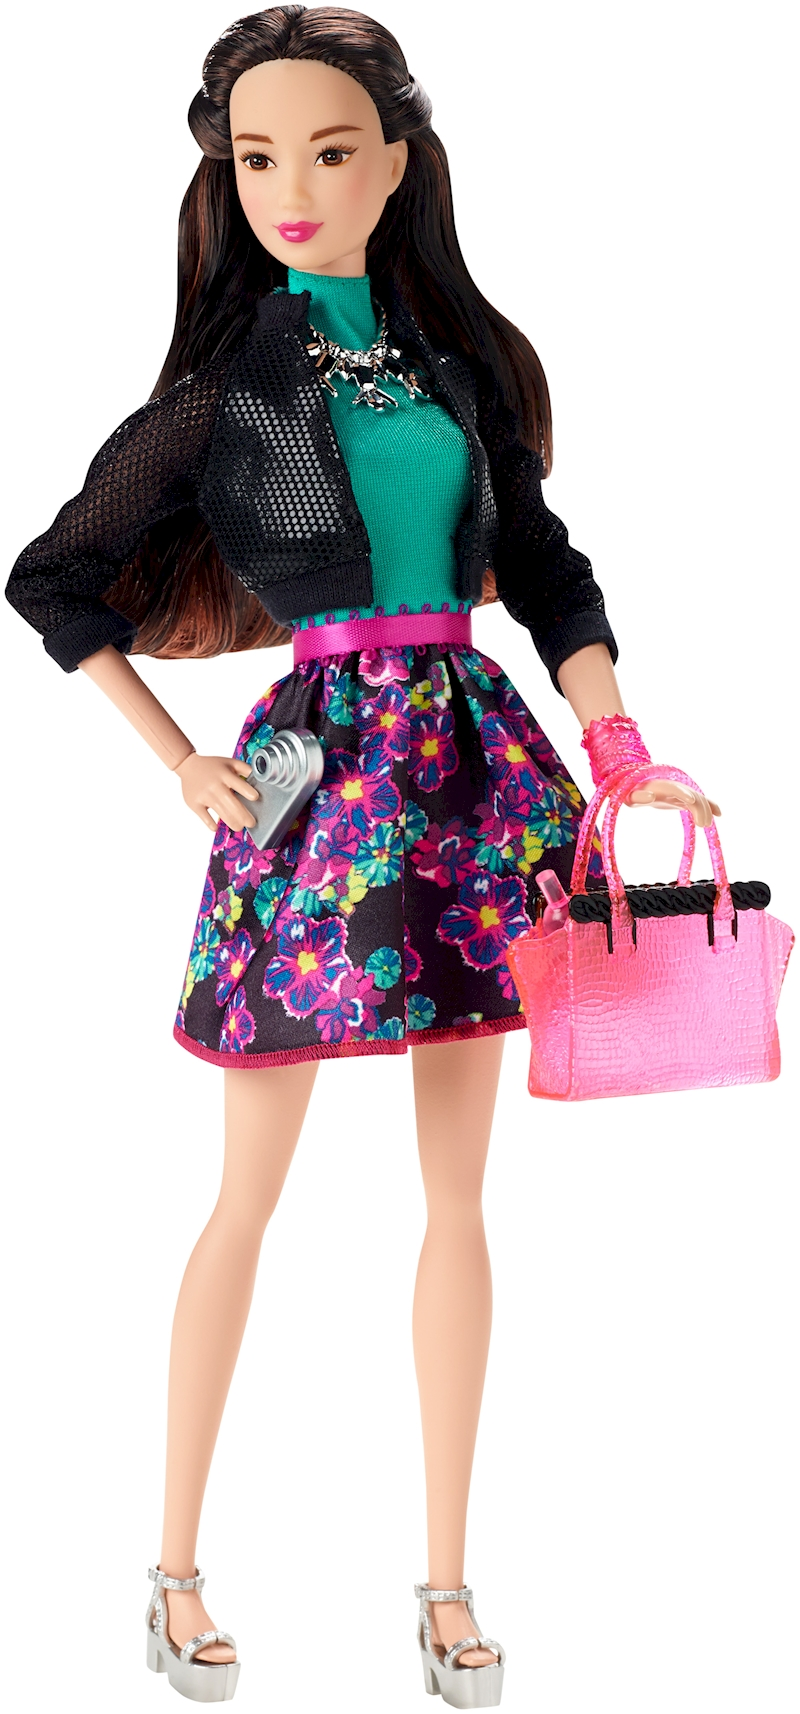 Barbie Style Glam Doll 3